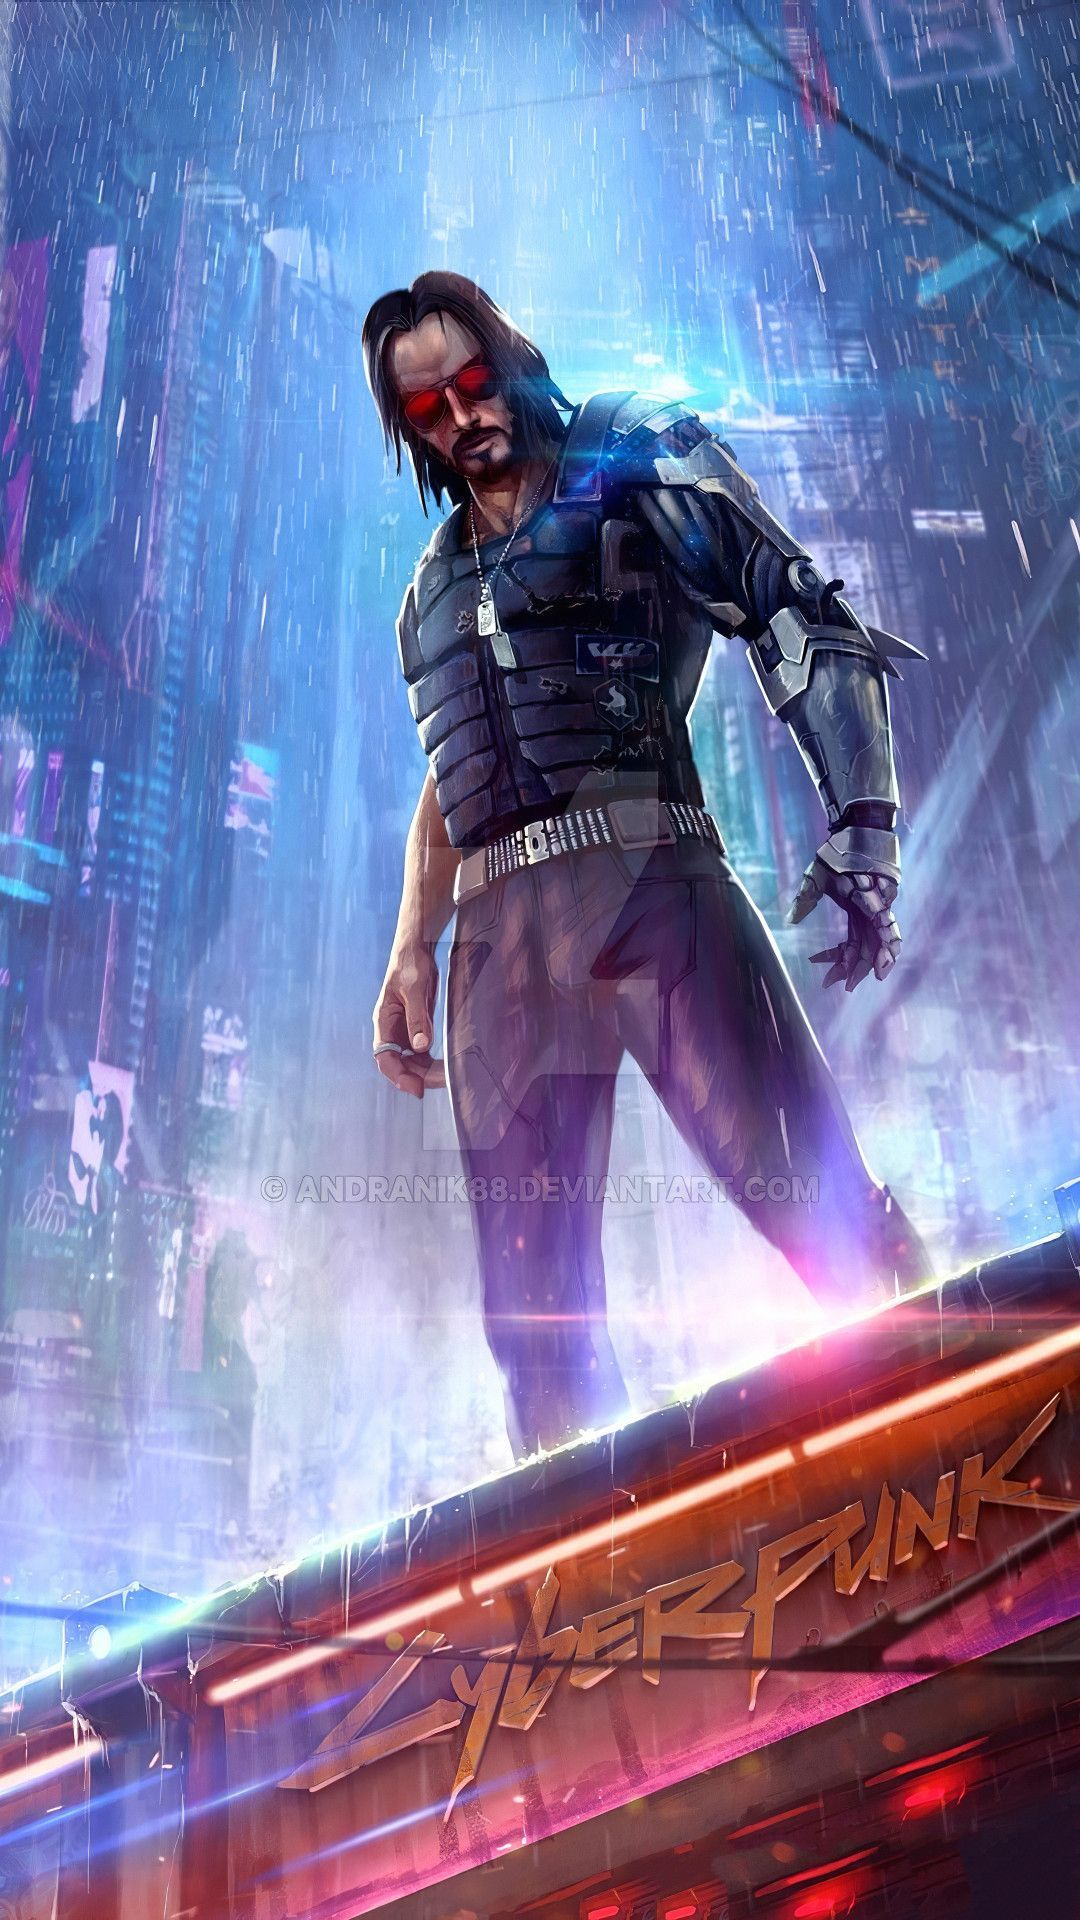 Cyberpunk 2077 Keanu Mobile Wallpaper Iphone Android Samsung Pixel Xiaomi 2020